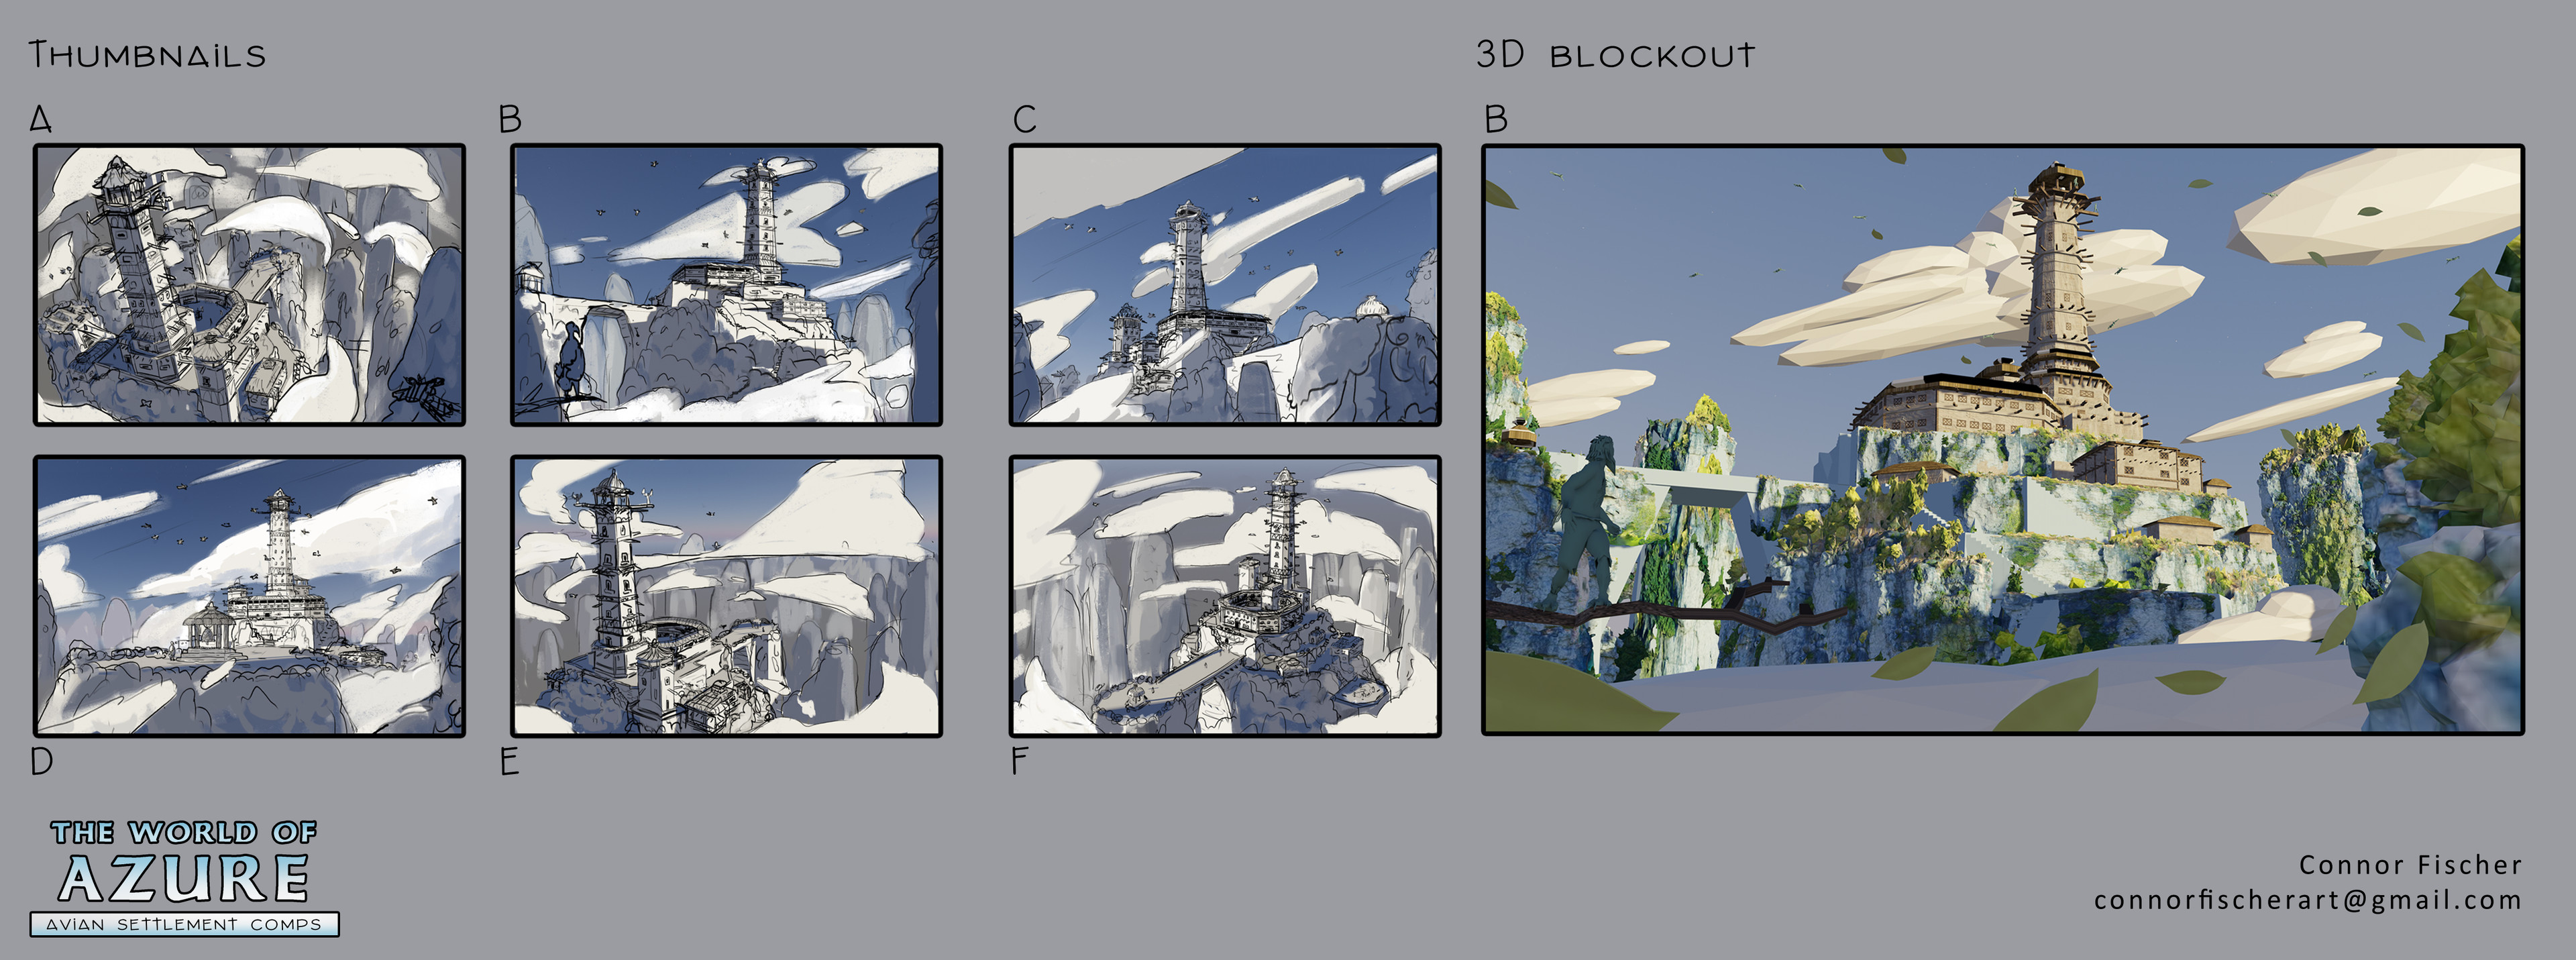 Thumbnail explorations, fluidly moving back and forth from 2D and 3D solutions.